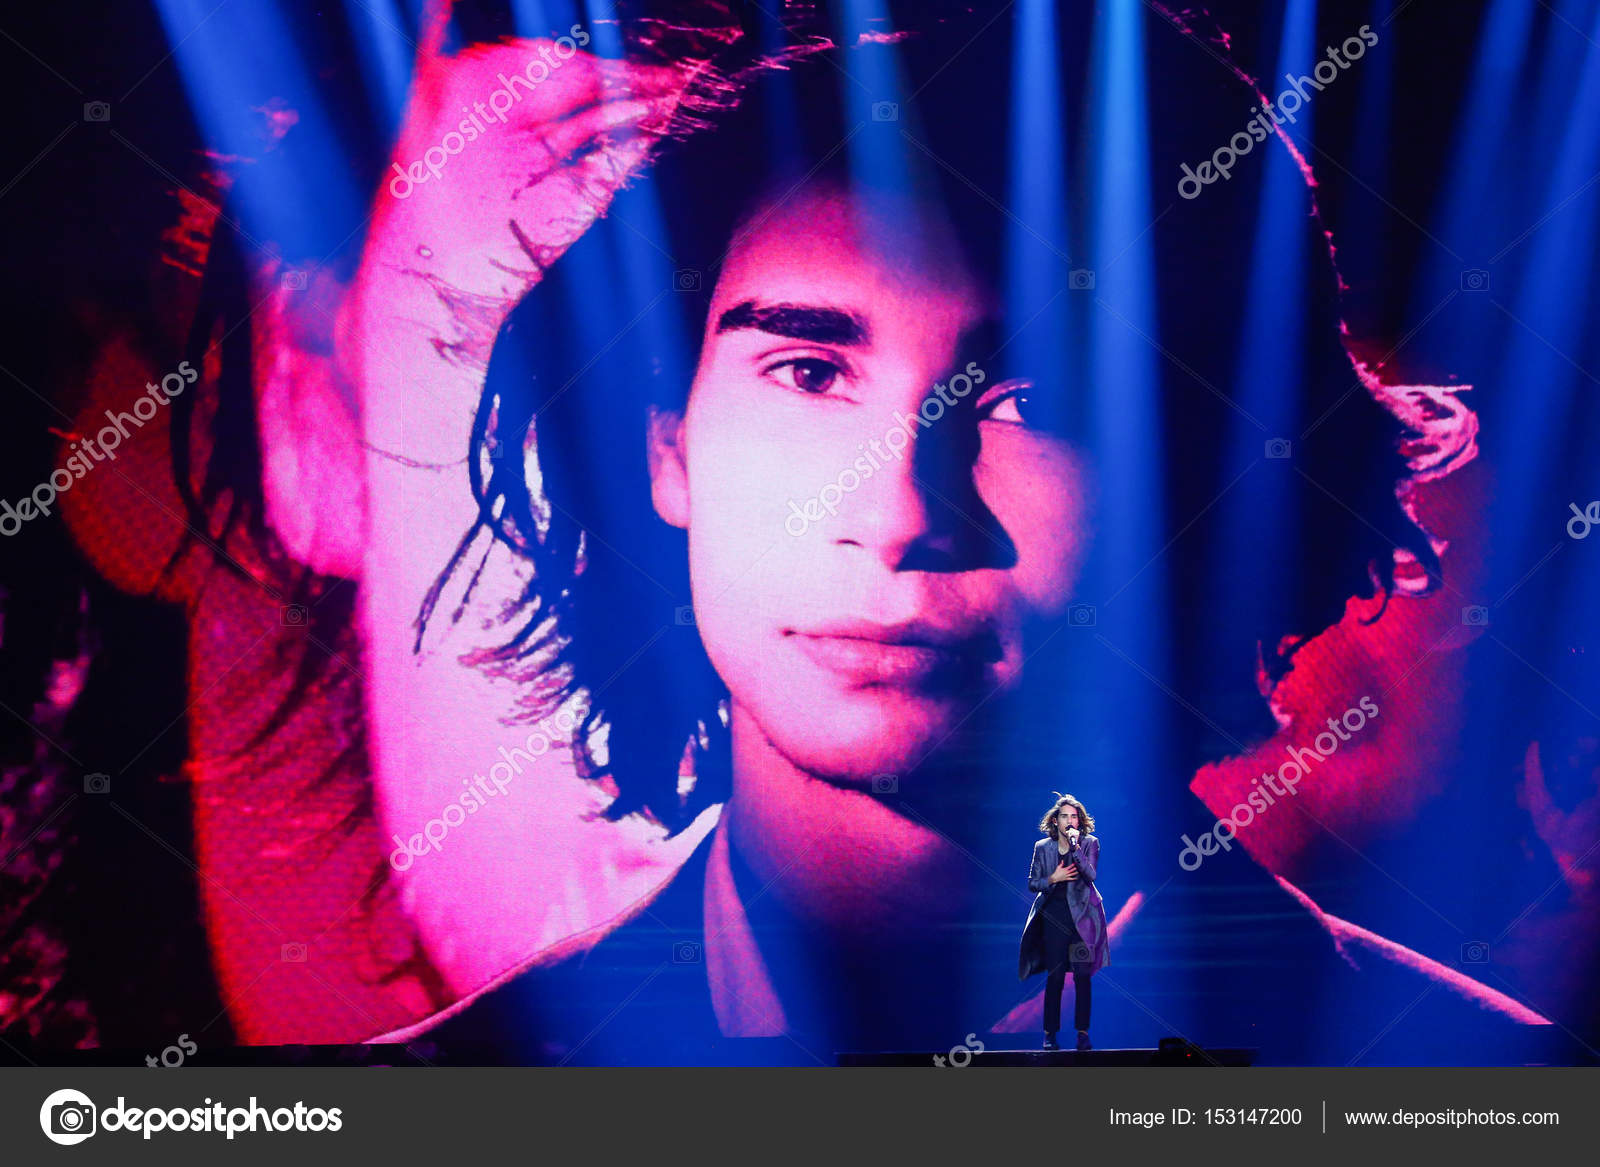 depositphotos_153147200-stock-photo-isaiah-firebrace-from-australia-eurovision.jpg